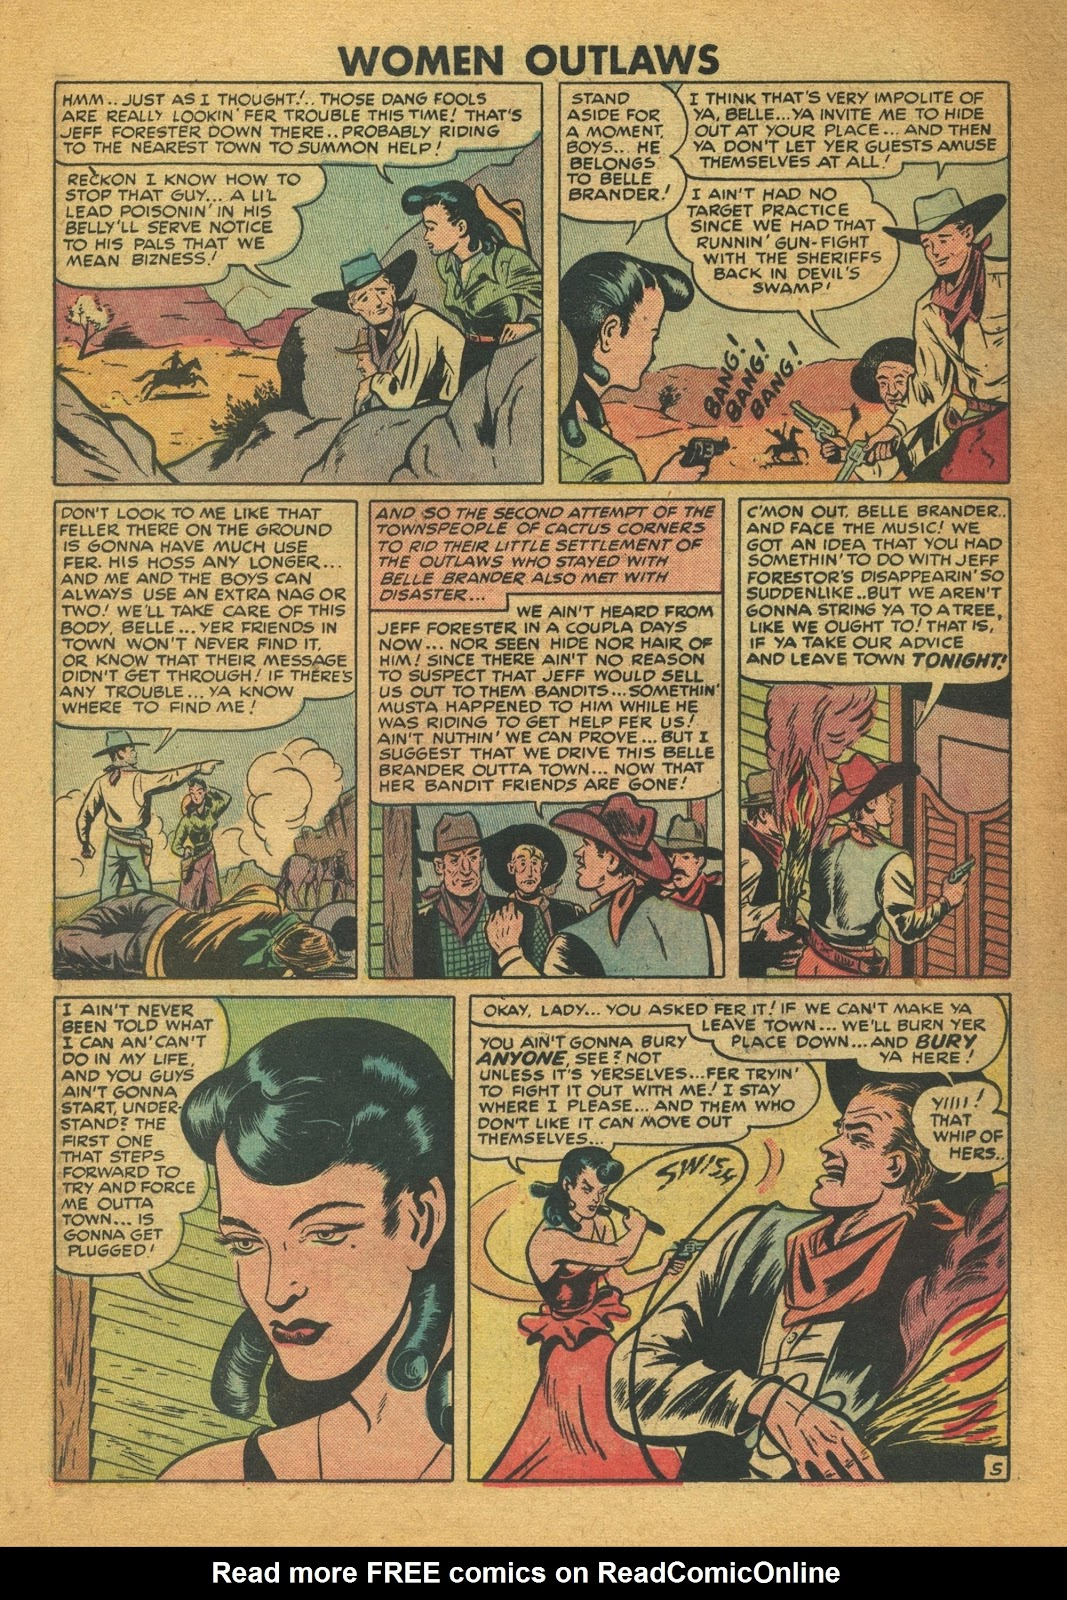 Read online Women Outlaws comic -  Issue #6 - 26